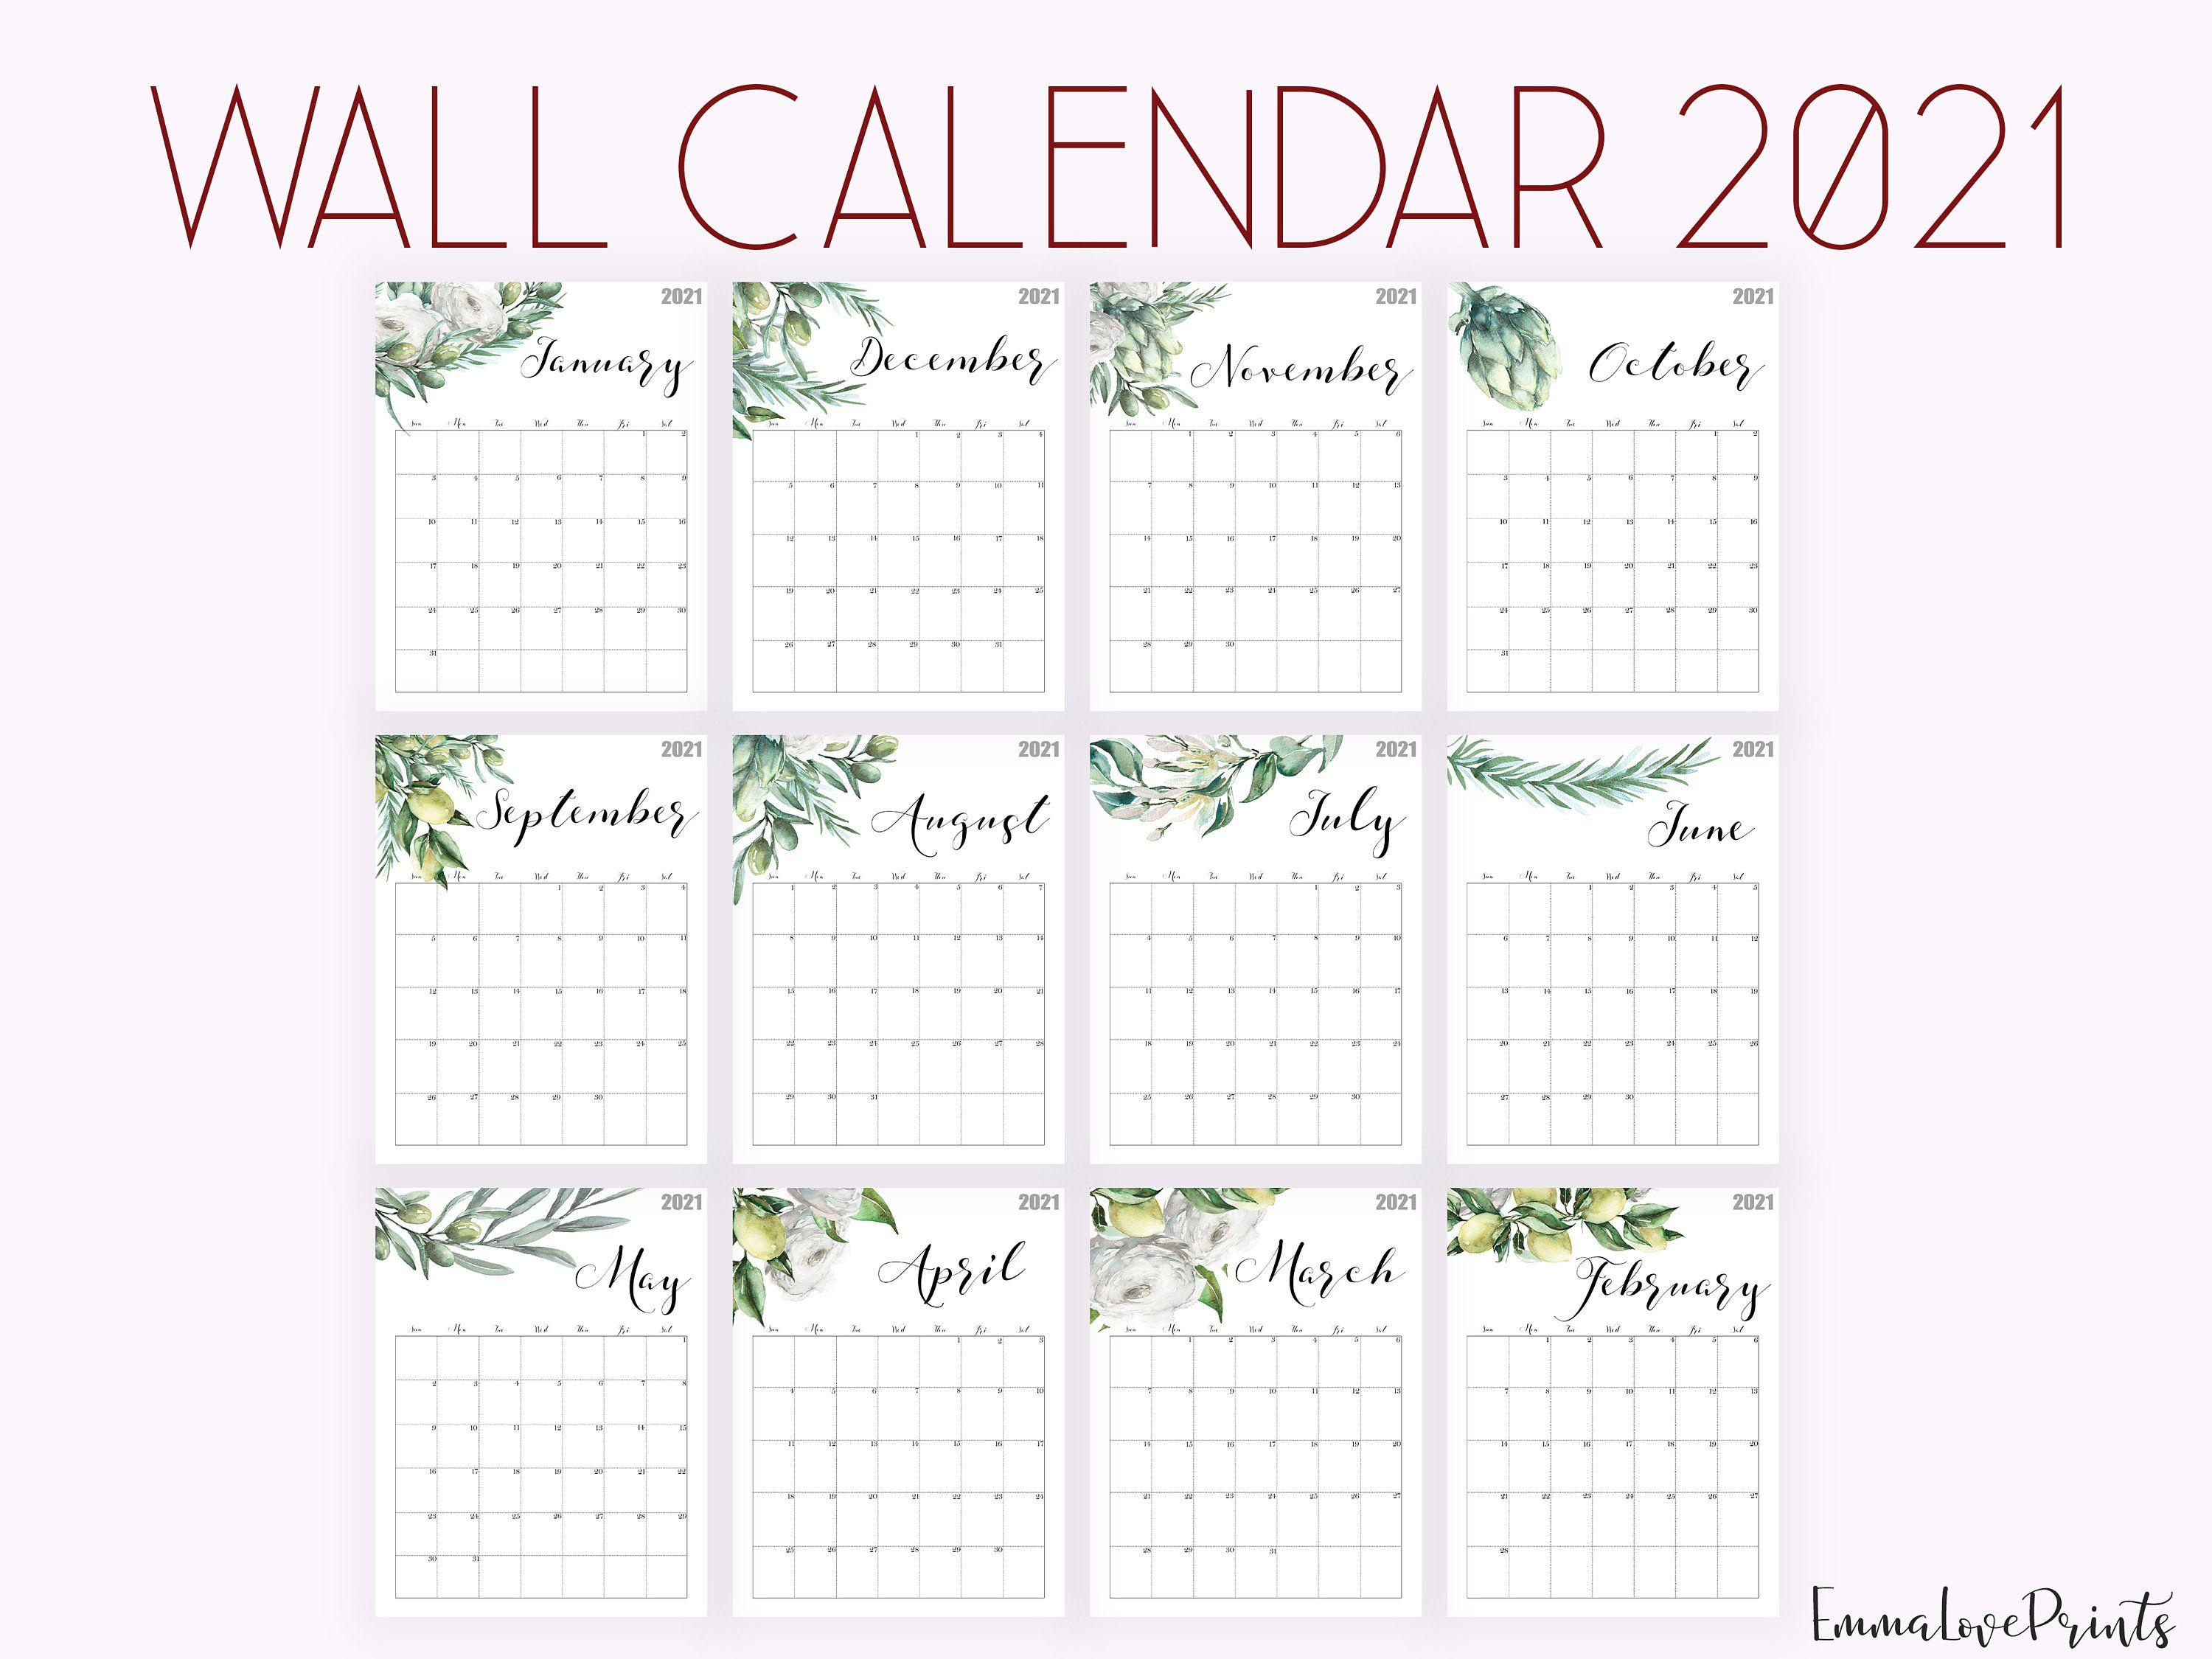 2021 Calendar Watercolour Calendar 2021 Botanical Wall Etsy Watercolor Calendar 2021 Calendar Wall Calendar